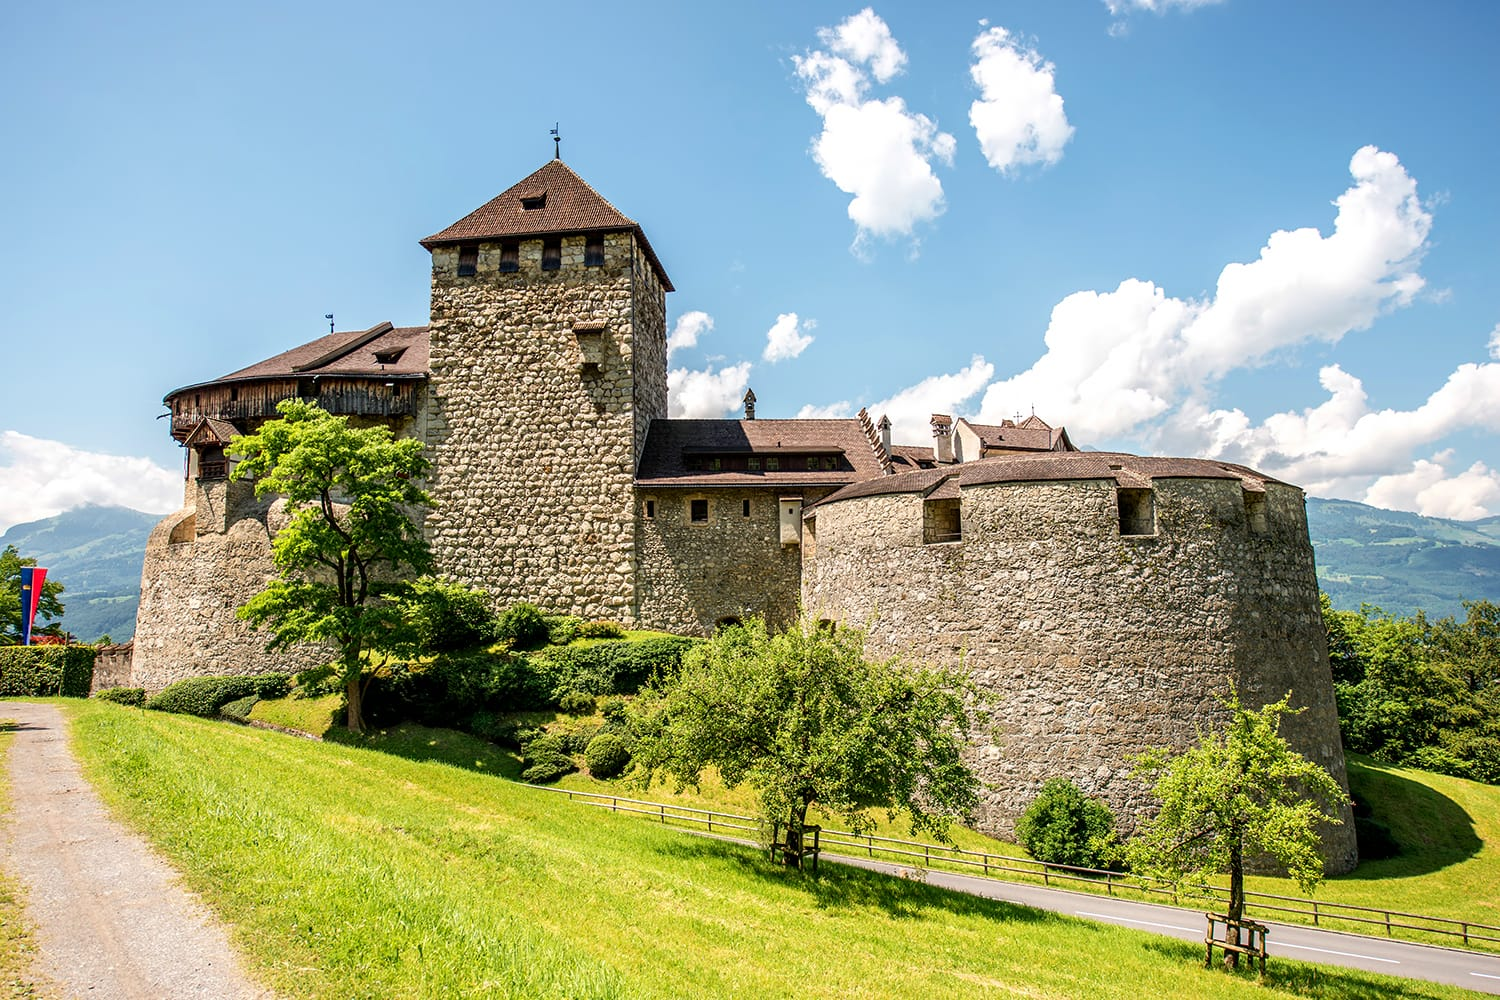 Landscape view on Vaduz castle in the capital of Liechtenstein. This castle is the palace and official residence of the Prince of Liechtenstein